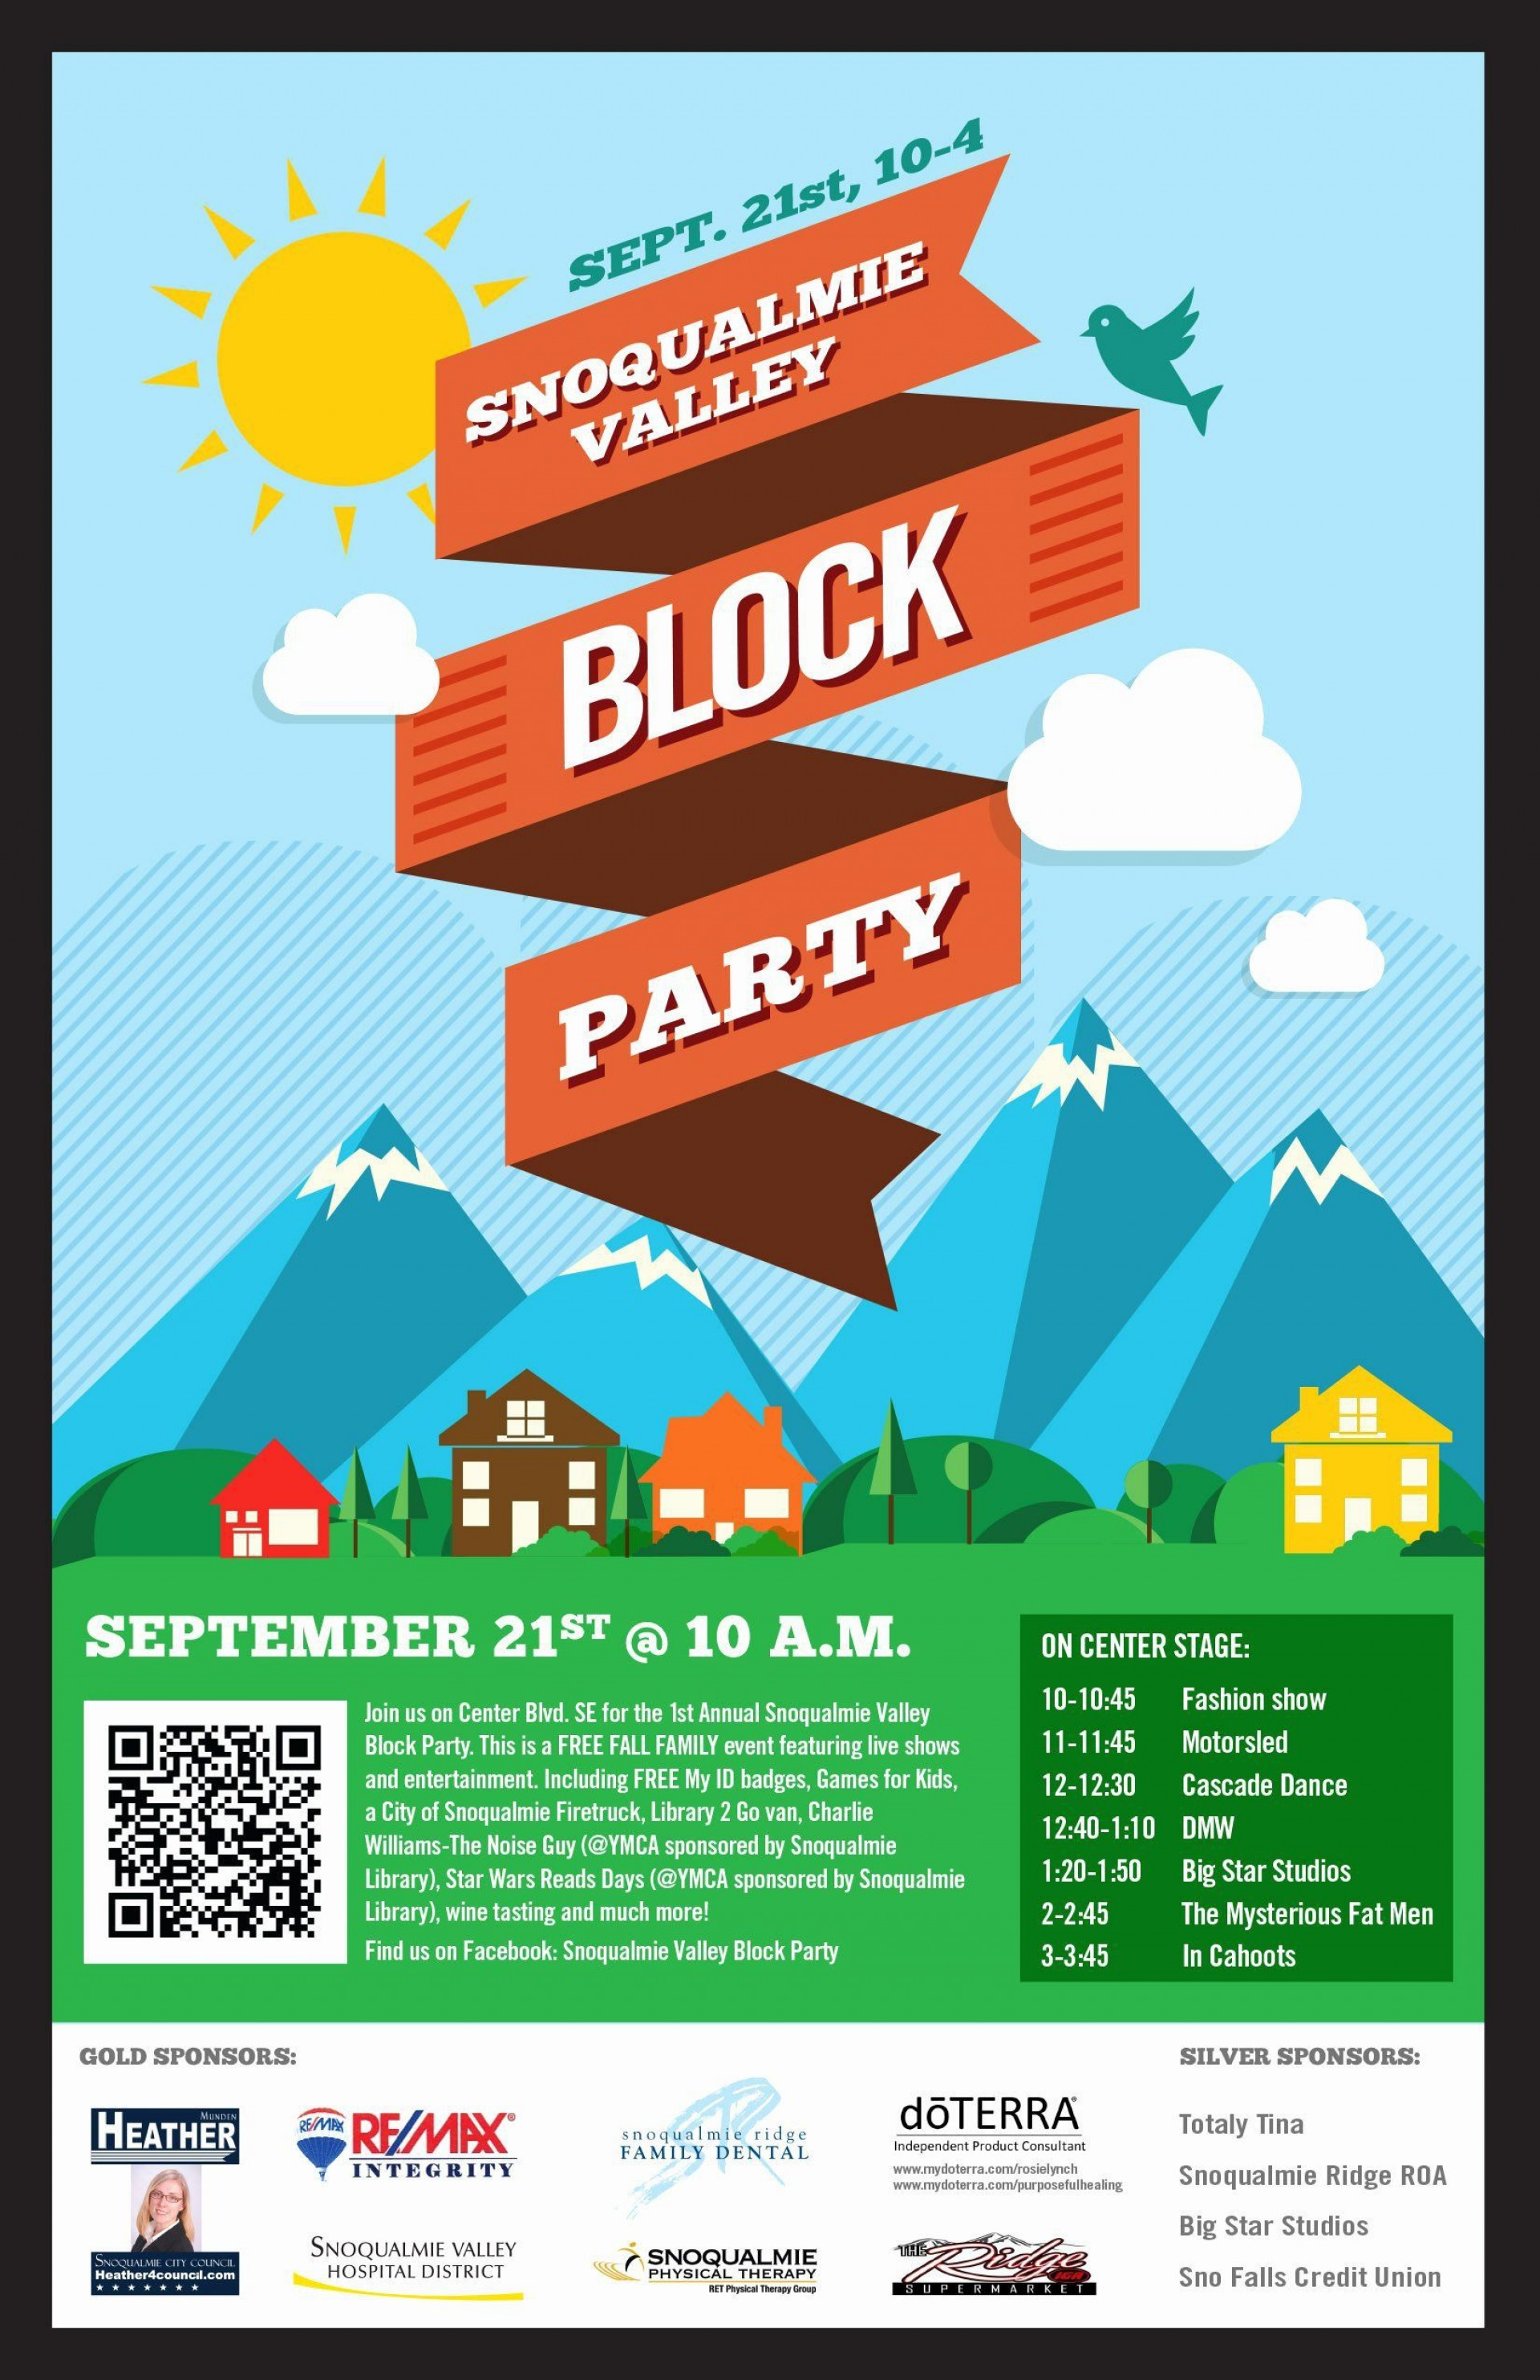 000 Remarkable Block Party Flyer Template Picture  Templates1920